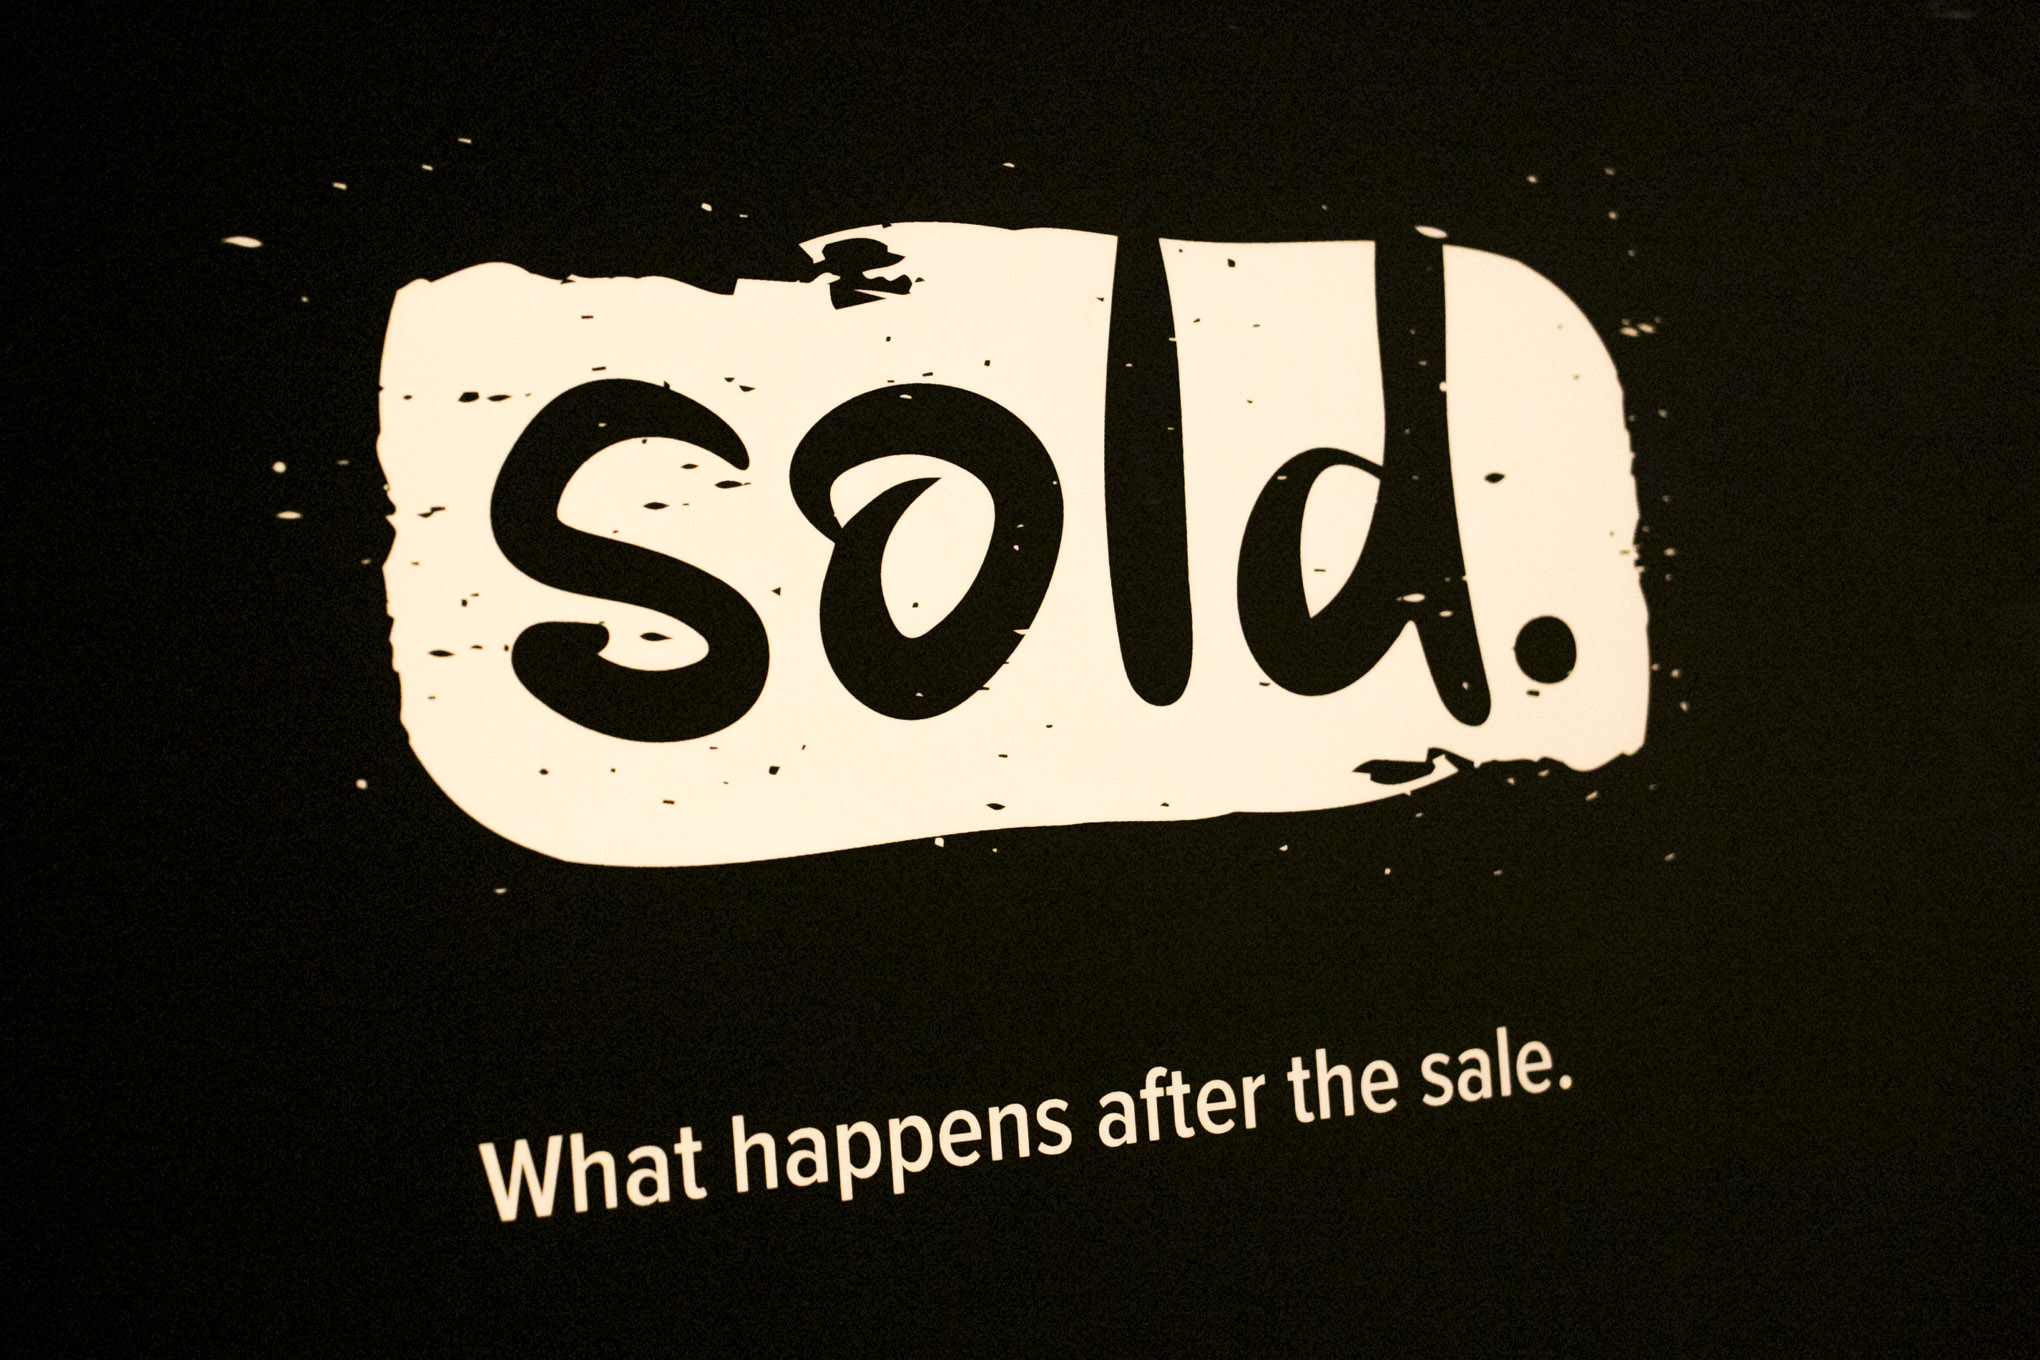 Sold is a a community based organization for professional sales people in tech. Photo by Kathryn Boyd-Batstone.